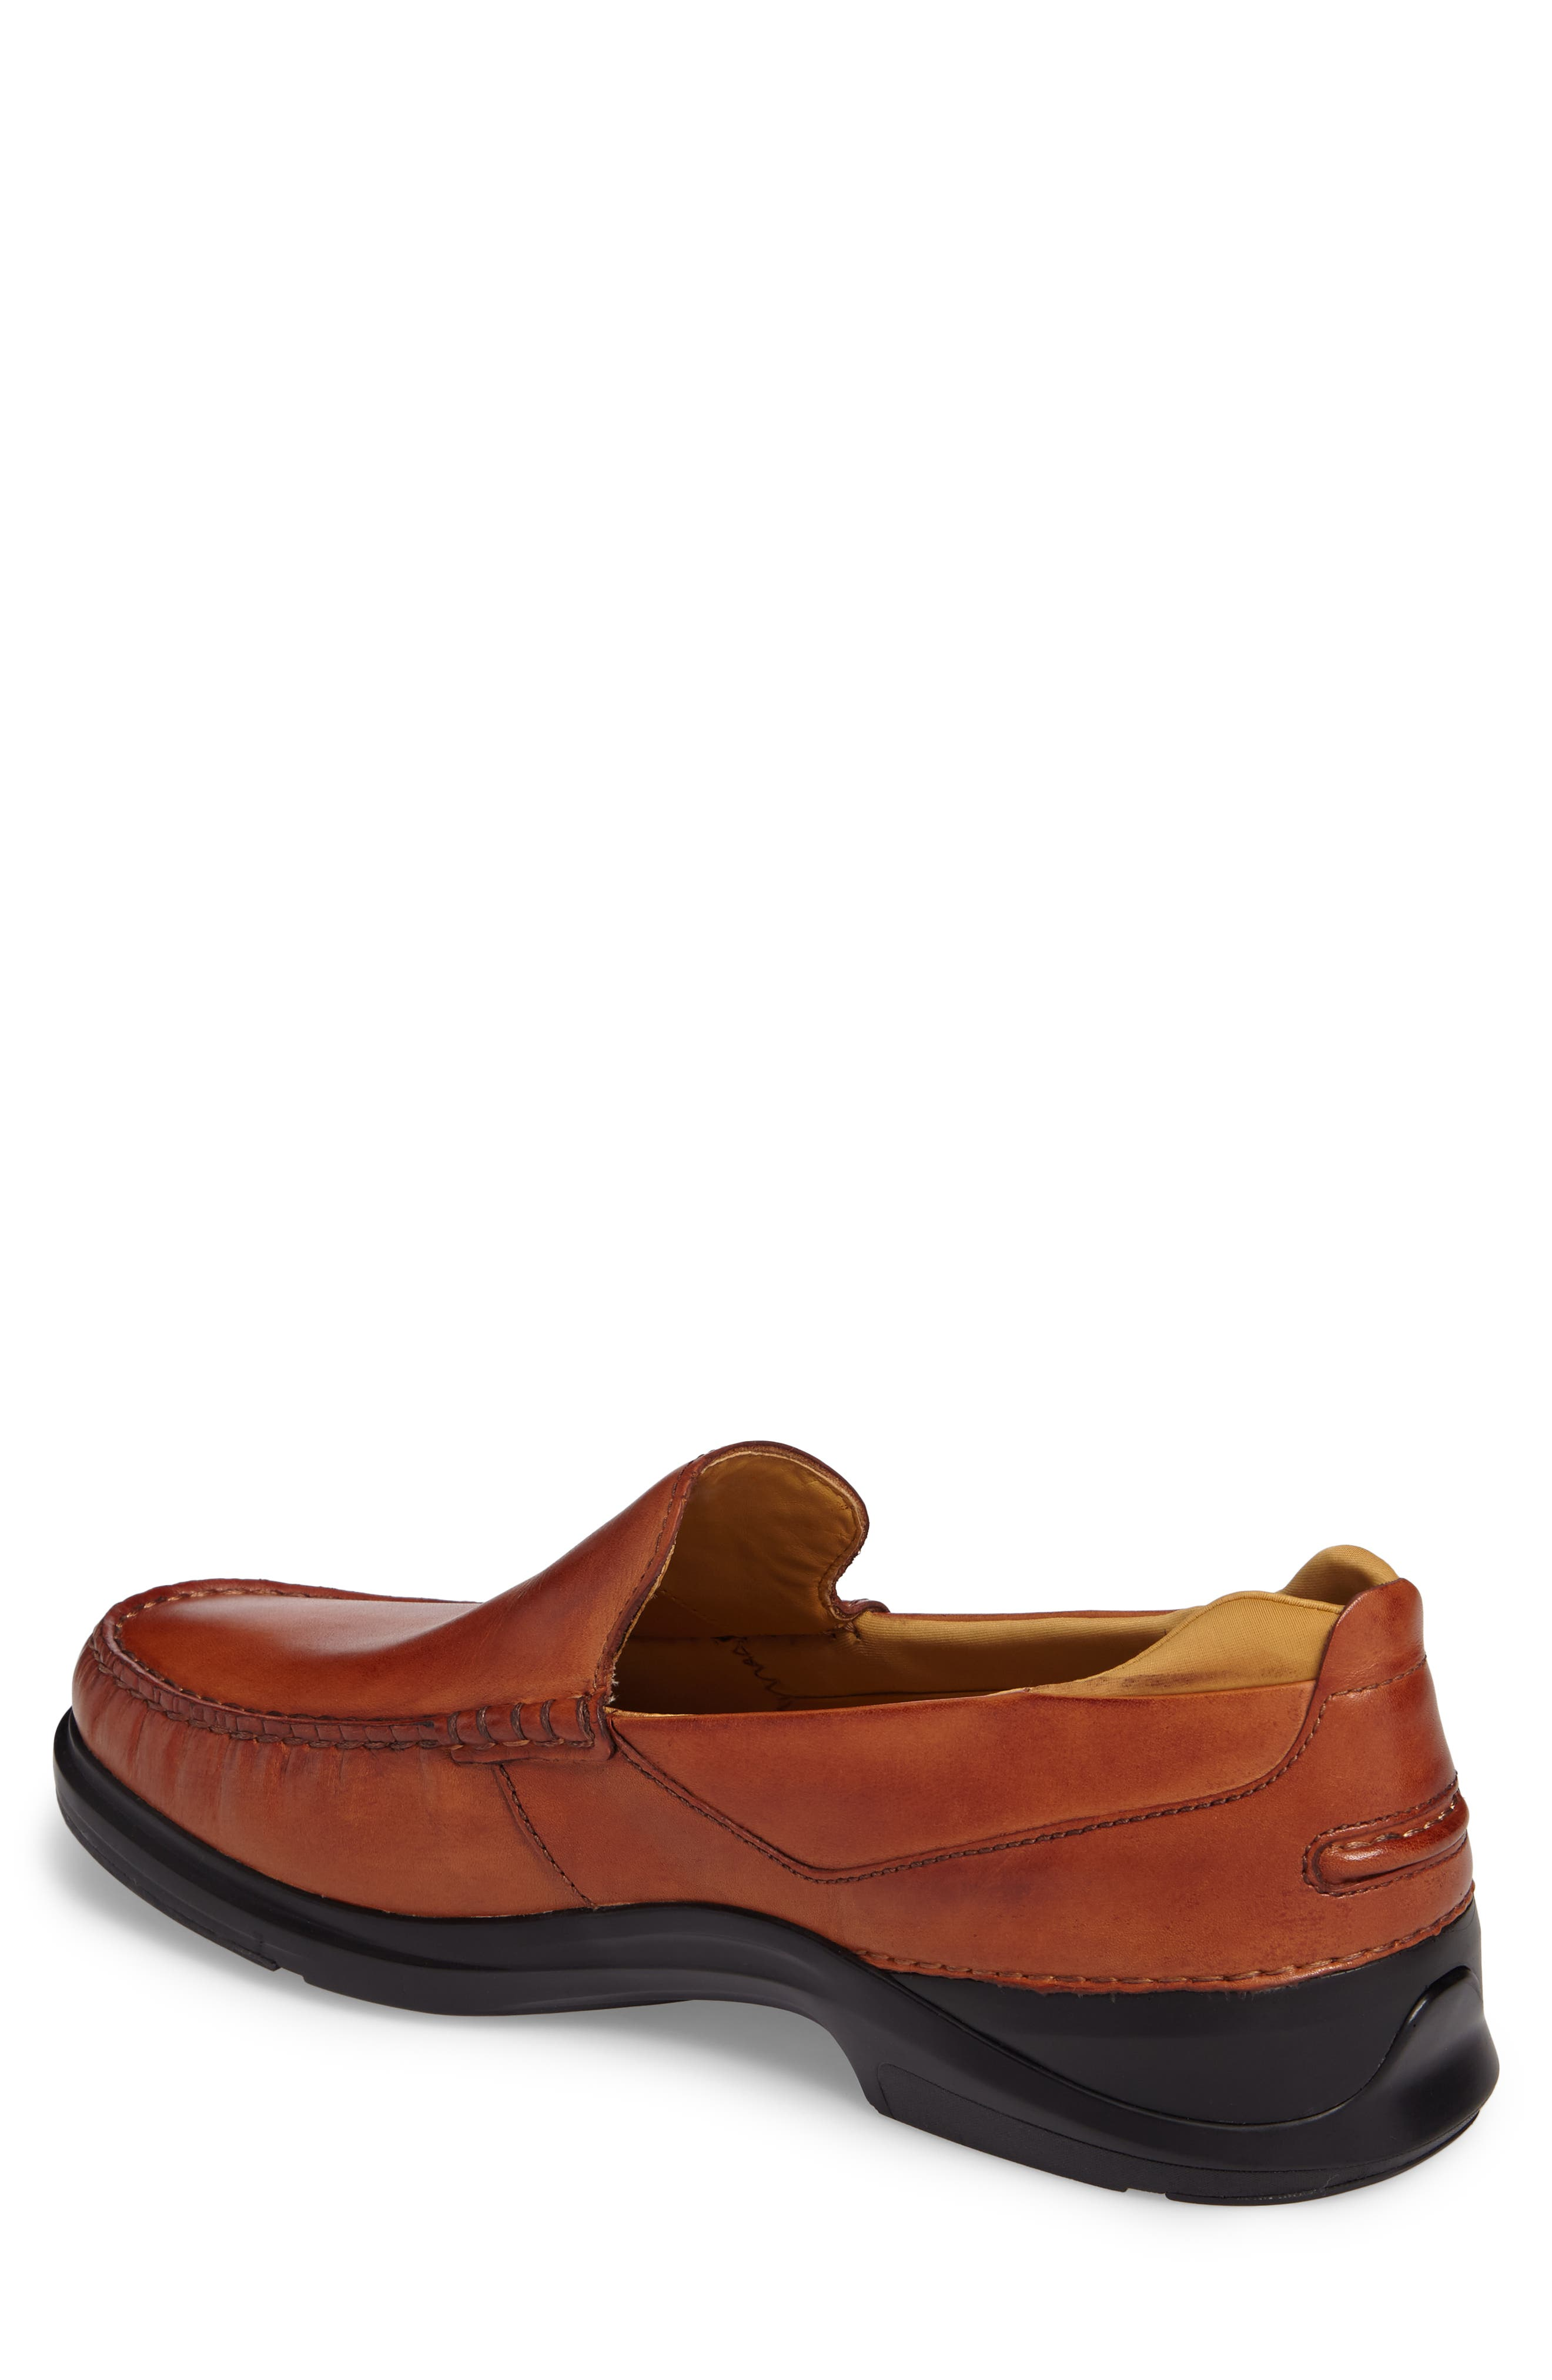 Alternate Image 2  - Cole Haan Bancroft Loafer (Men)